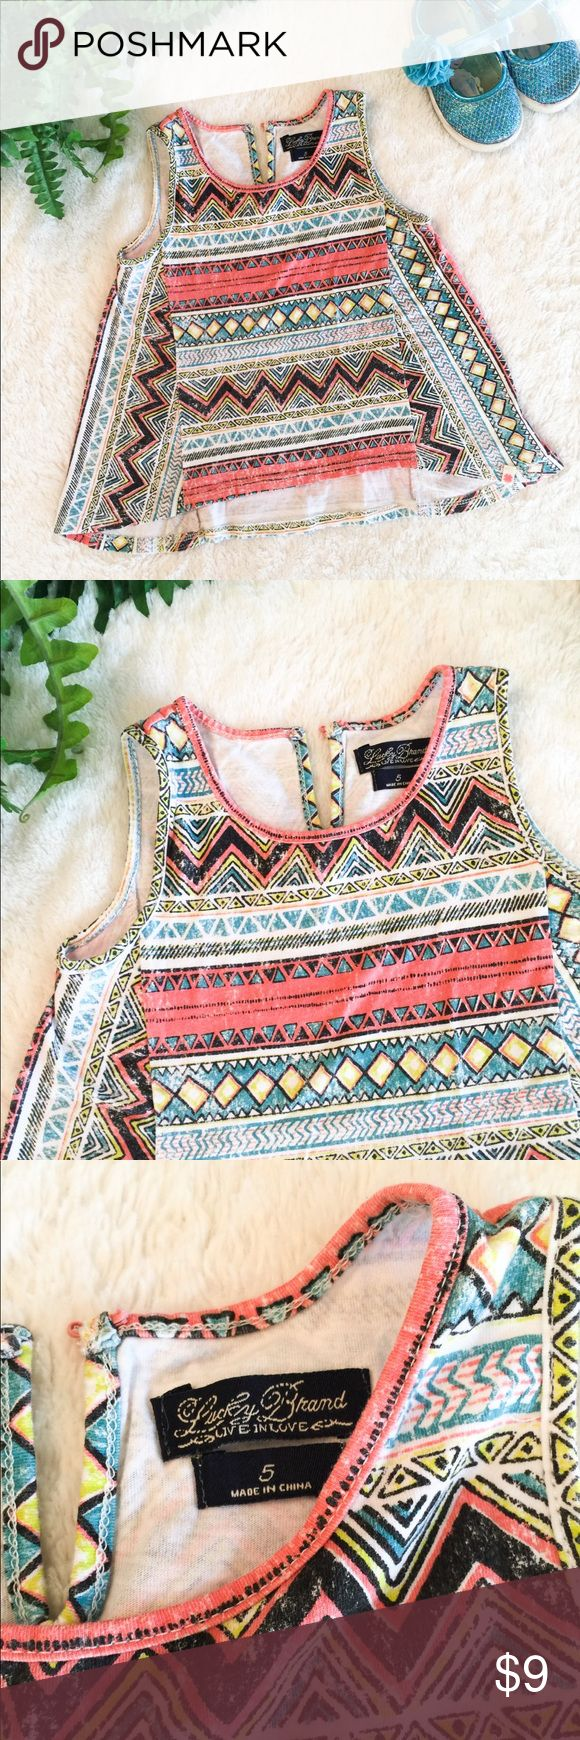 Lucky Brand ☘️ Aztec Top 5T Fun Aztec style print. Tank top arms and flare. A perfect go-to top. You can pull out so many colors to pair with shoes or pants! Prices are already low- bundle for extra savings! 🦌🎀 Lucky Brand Shirts & Tops Tank Tops